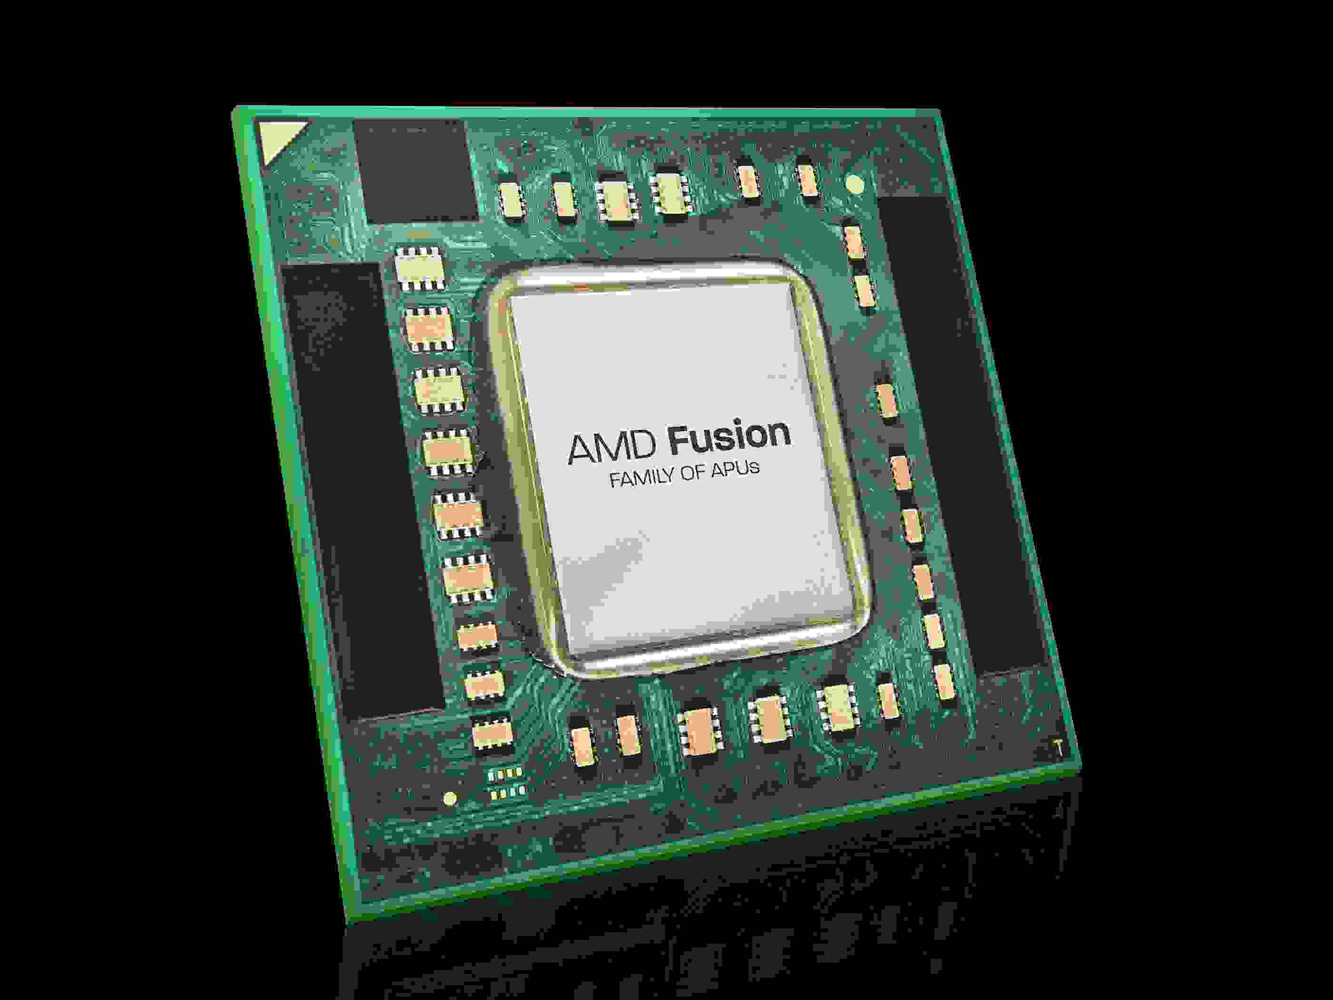 AMD A series A8-3850 / 2.9 GHz processor